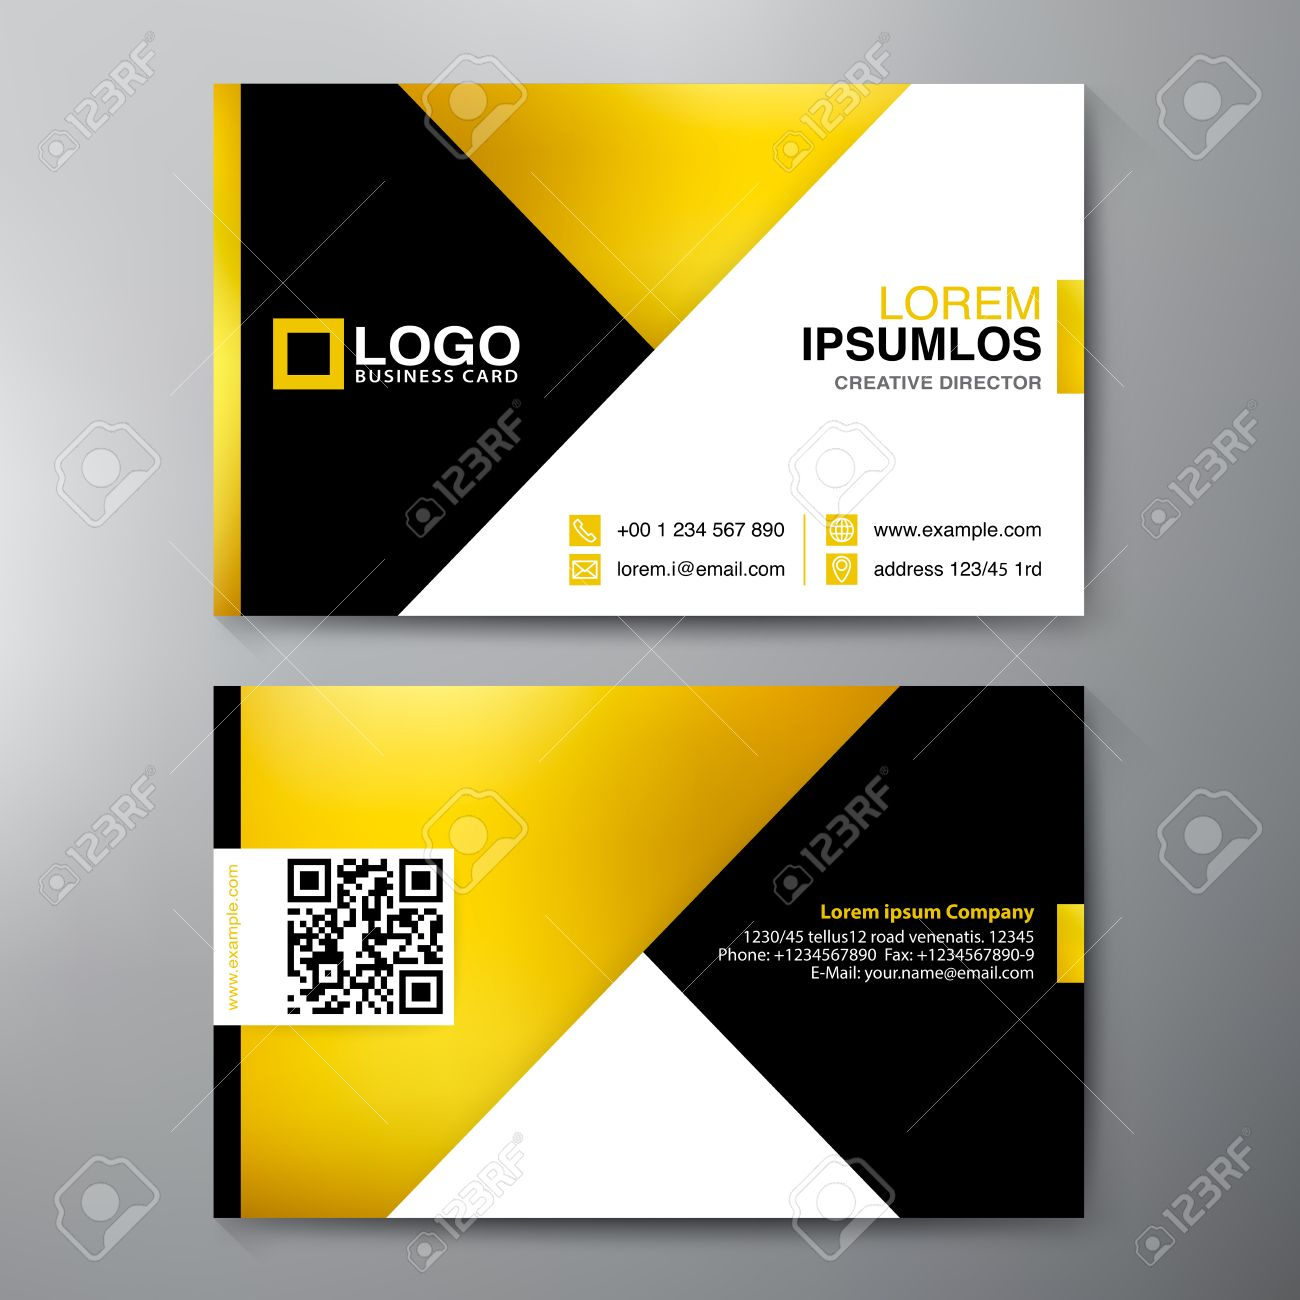 Modern Business Card Design Template Vector Illustration Royalty